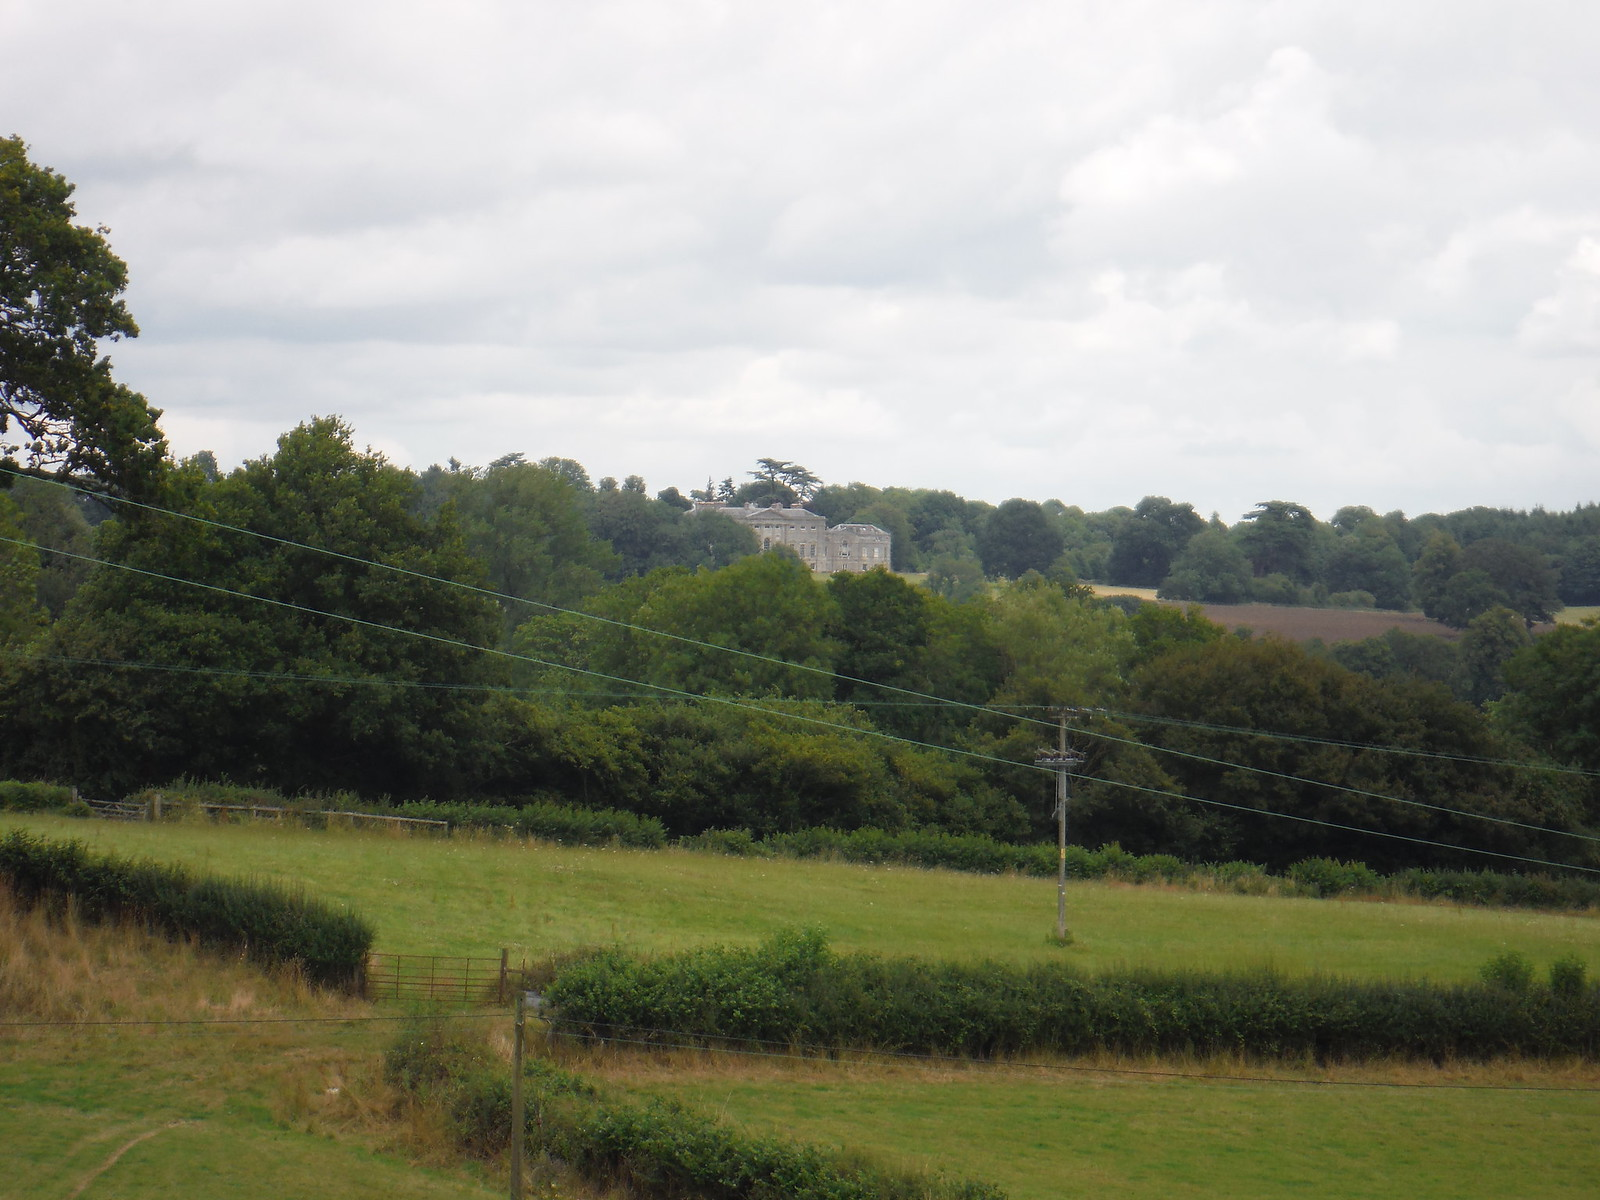 New Wardour Castle from near Pigtrough Lane SWC Walk 252 Tisbury Circular via Donhead St. Andrew